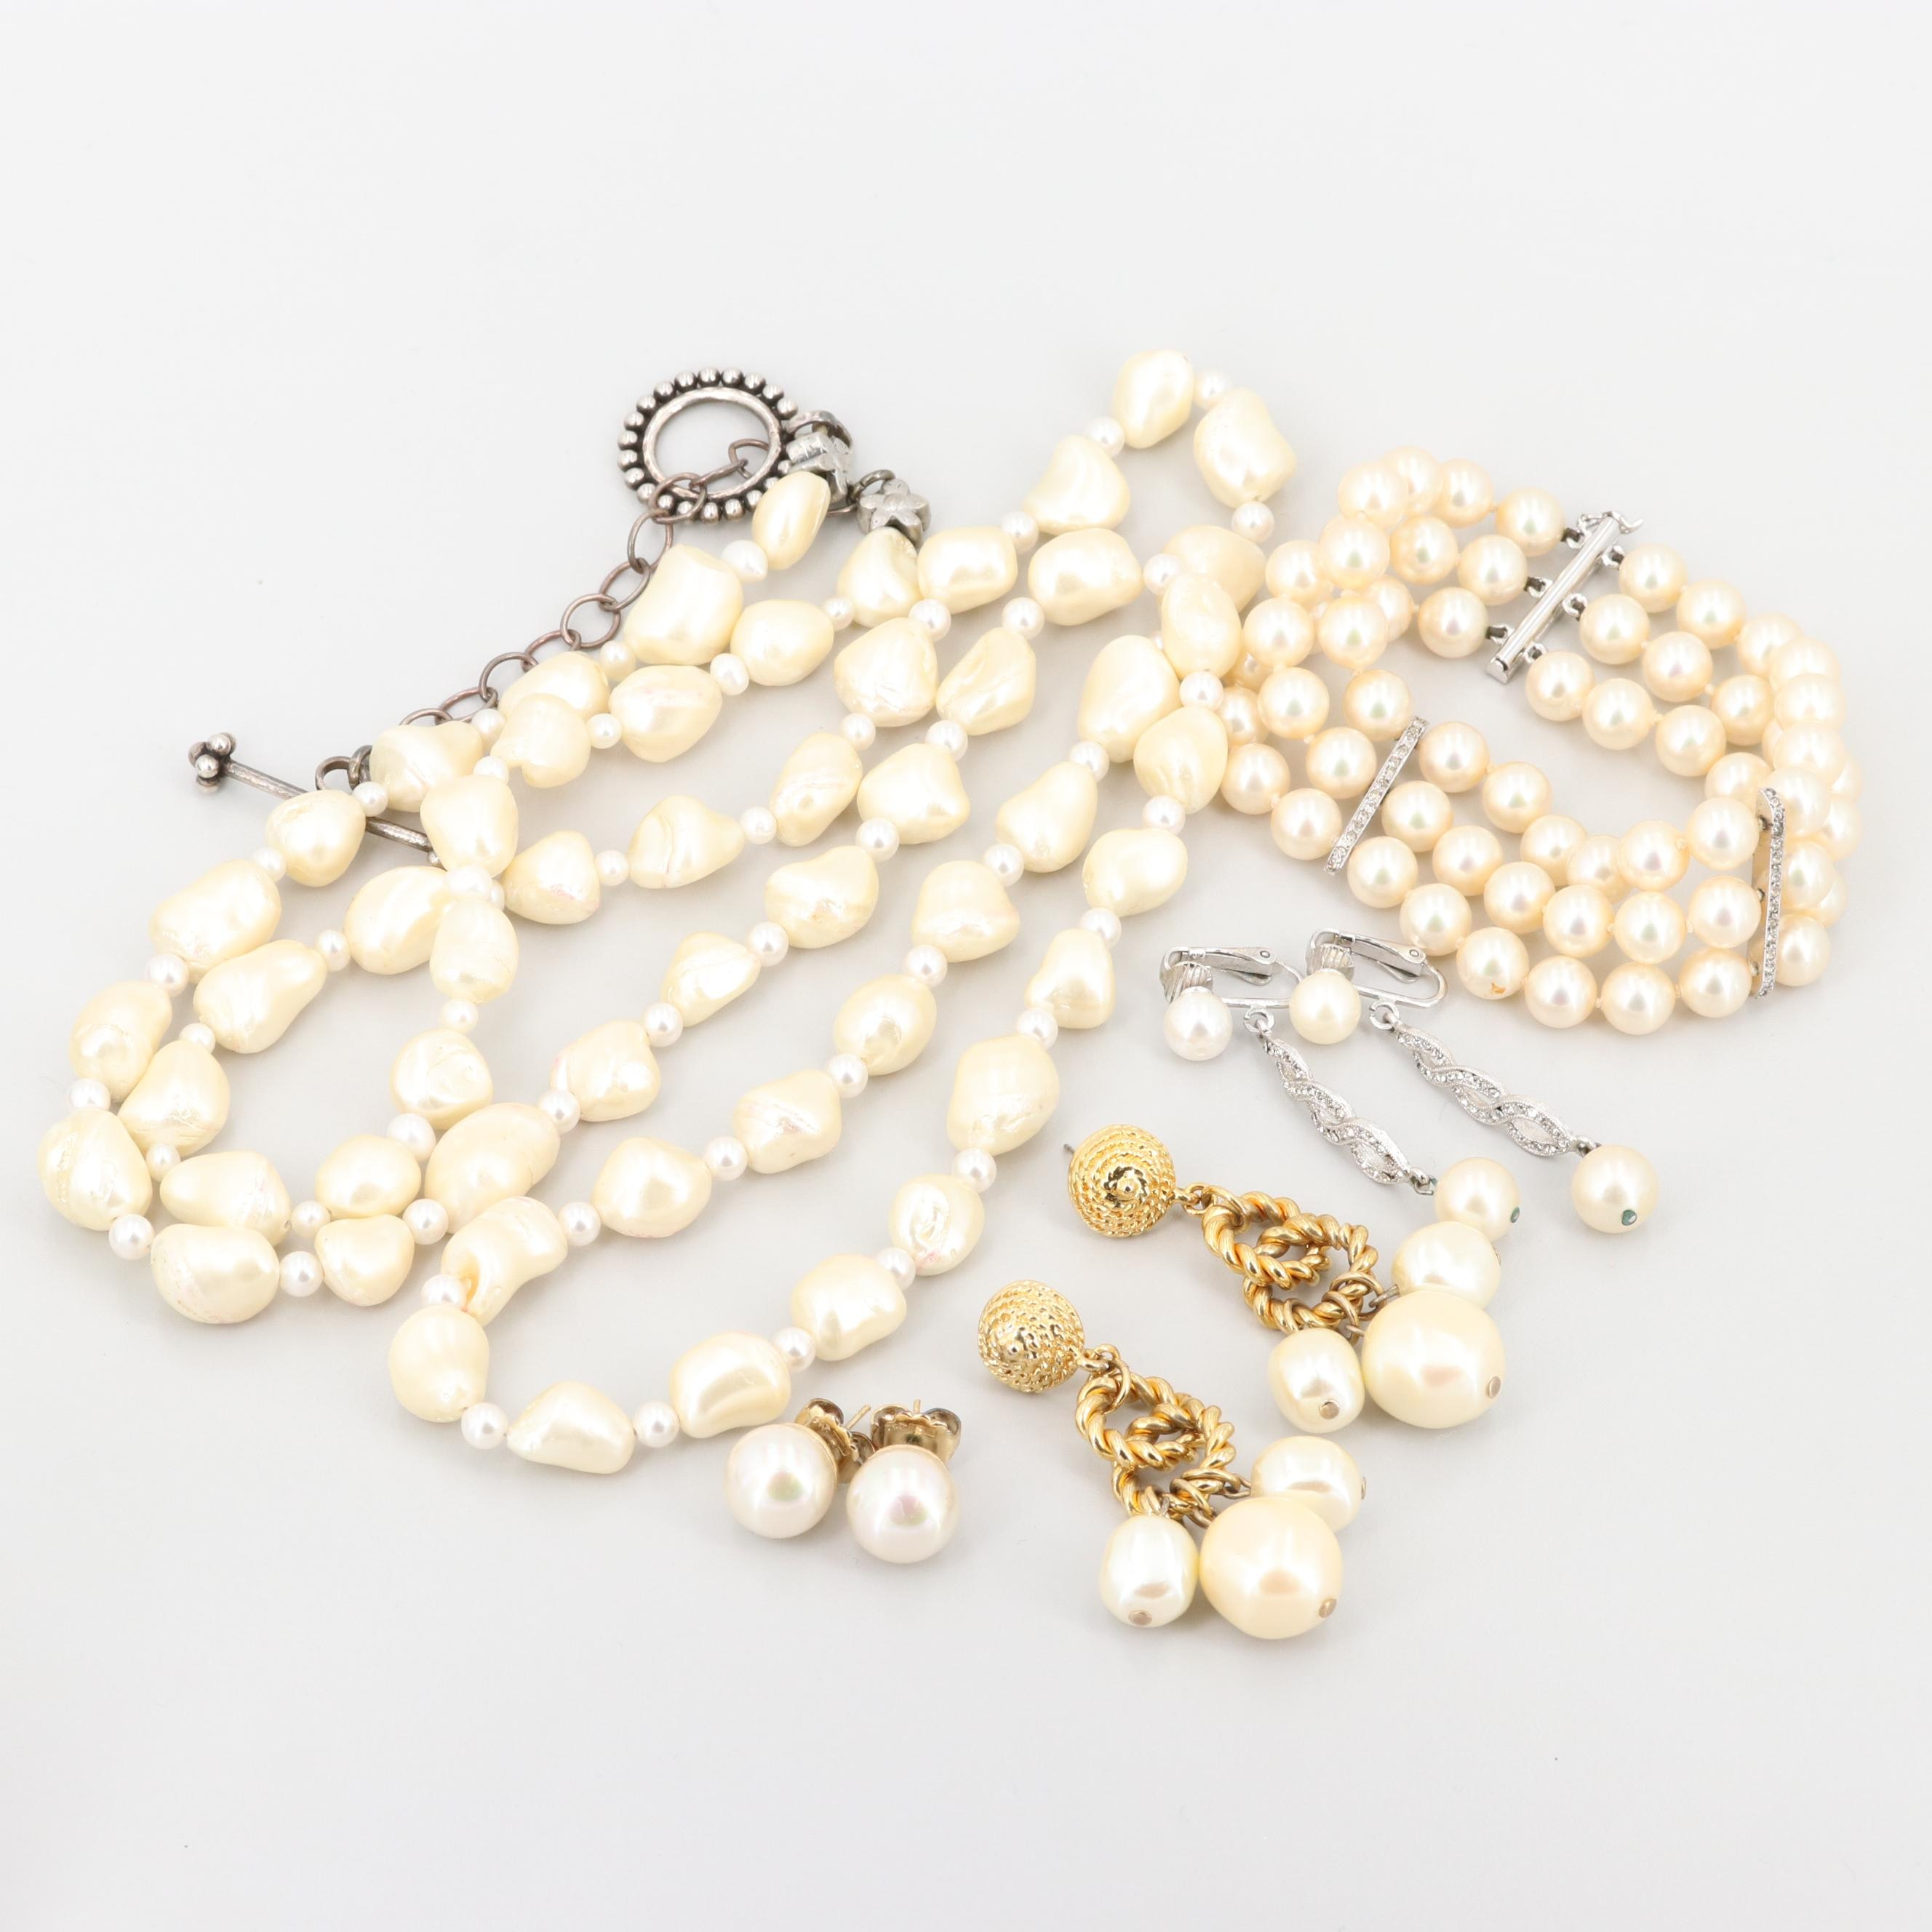 Imitation Pearl and Rhinestone Jewelry Including Sterling Silver